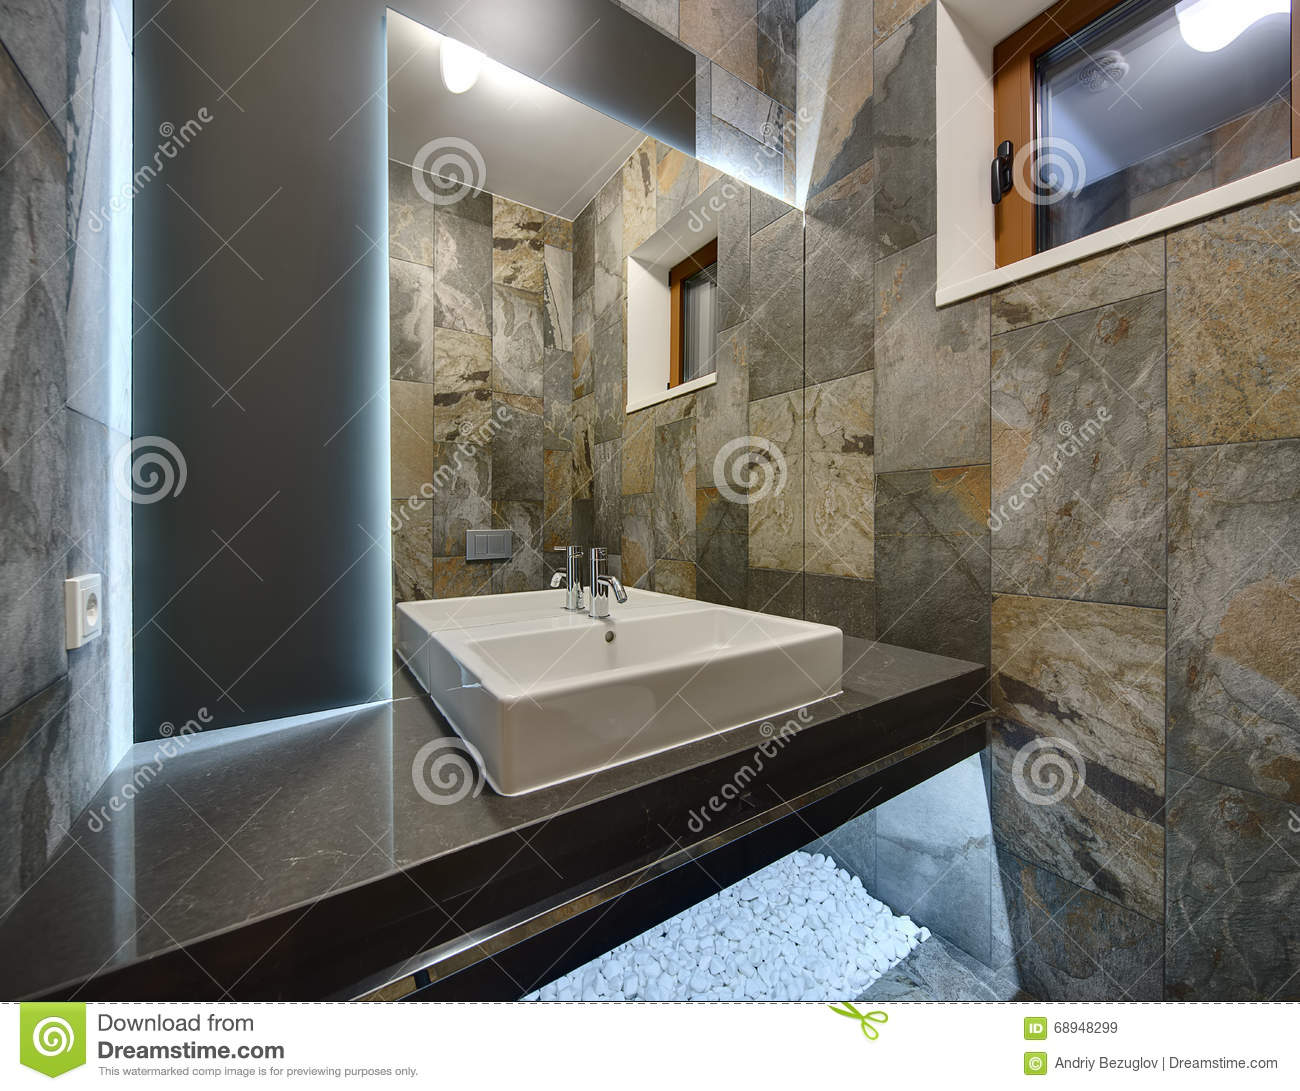 Washroom in a modern style stock image image of room for Washroom style